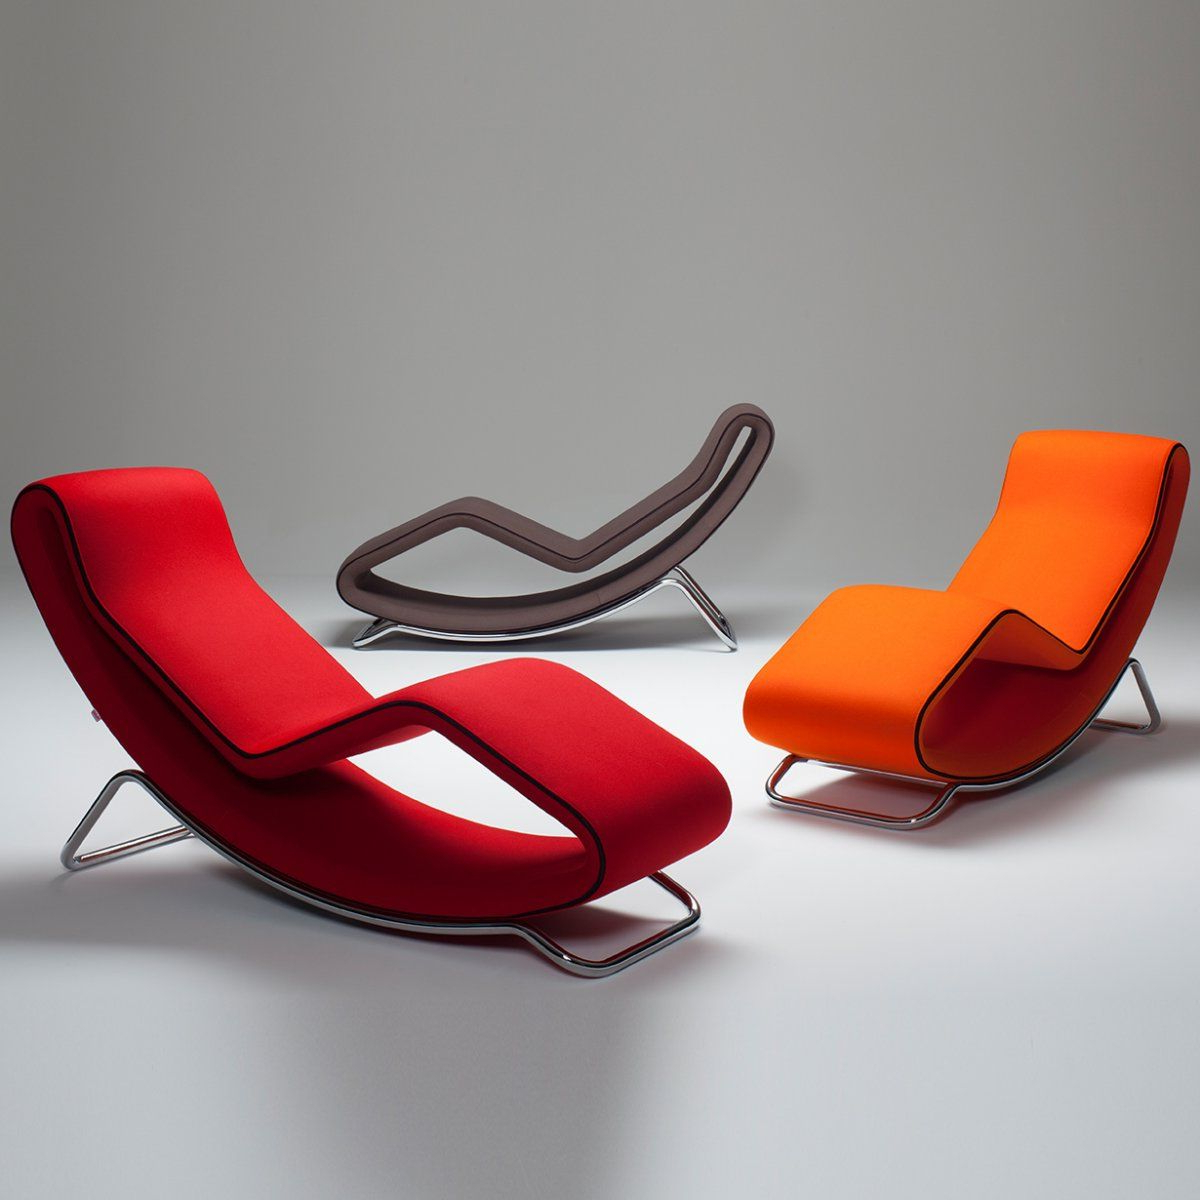 Italian Furniture Intended For Focht Armchairs (View 6 of 20)